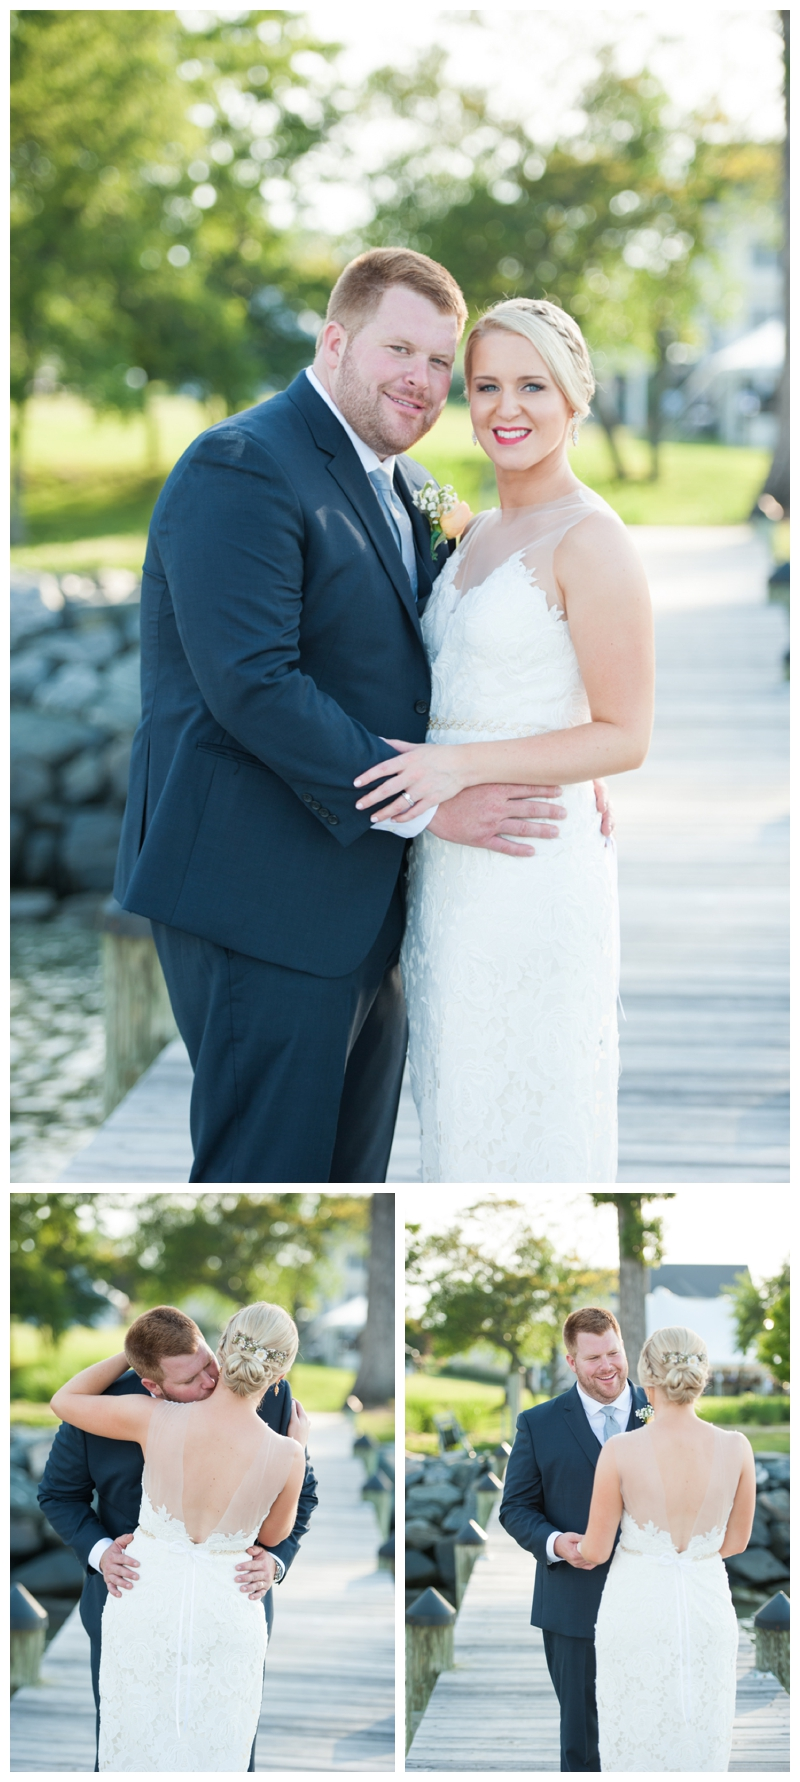 Wedding on the Eastern Shore at Maria's Love Point by Rachael Foster Photography_0038.jpg